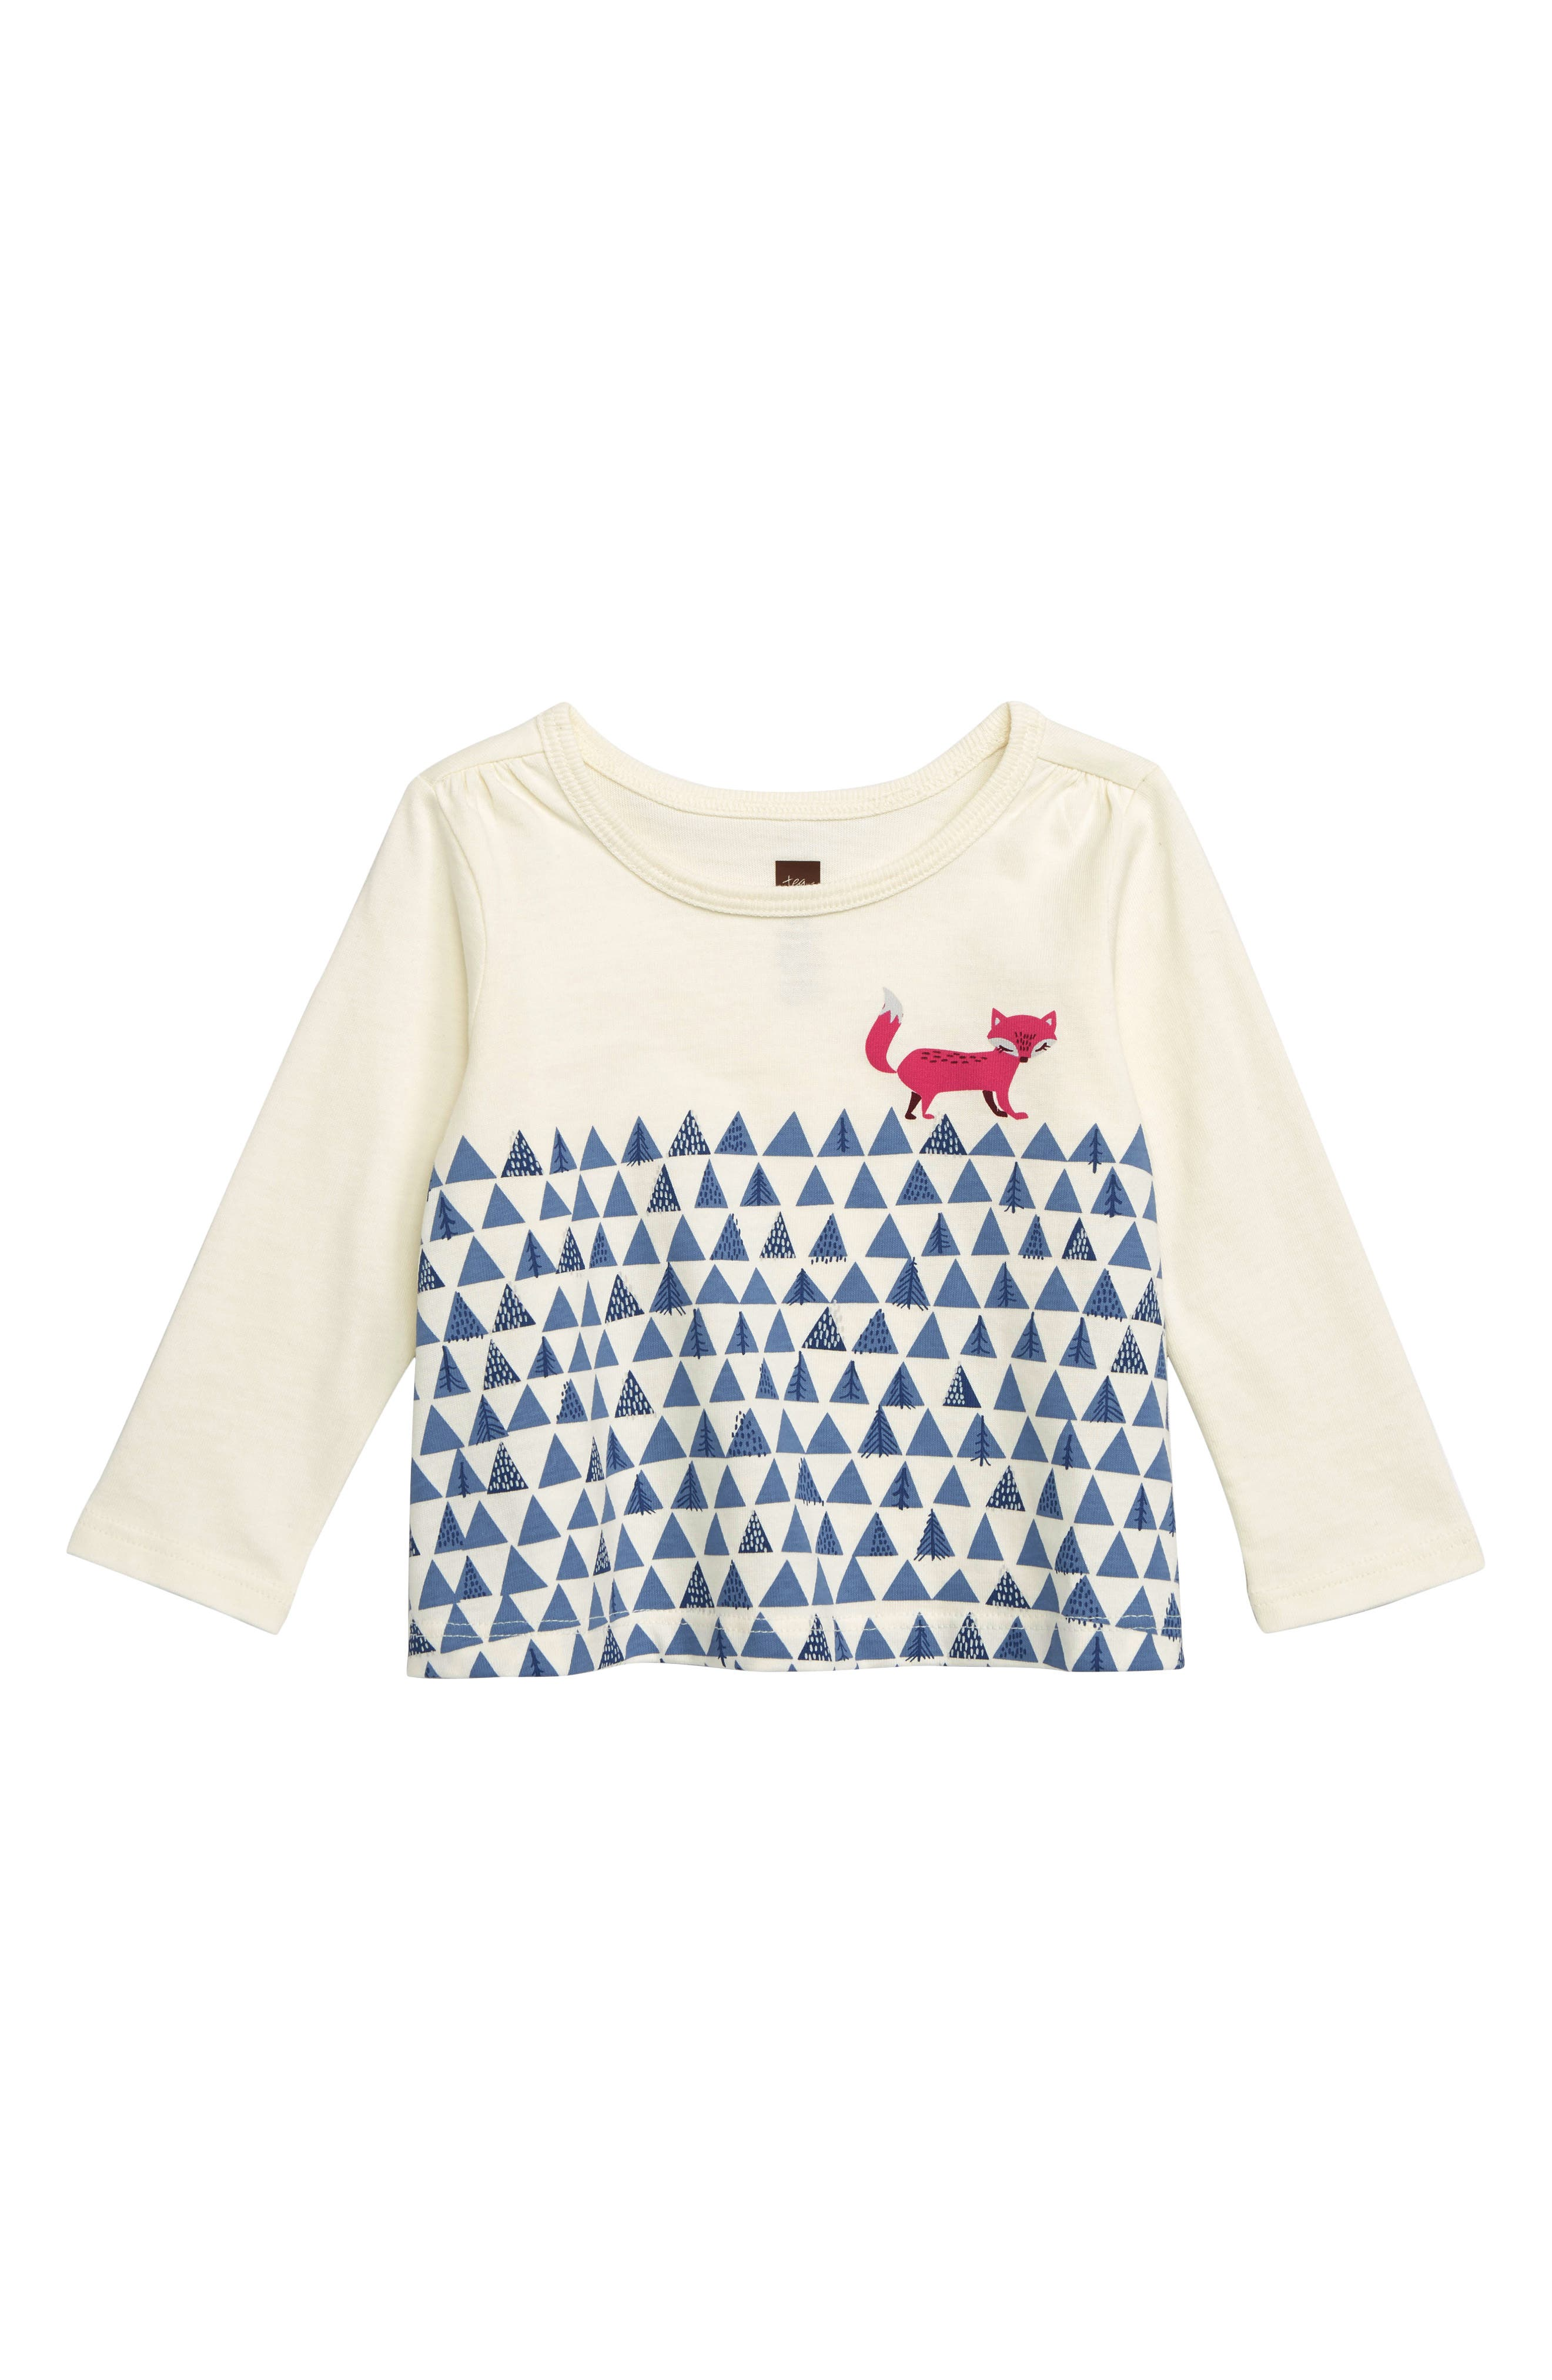 Infant Girls Tea Collection Fox Trot Graphic TShirt